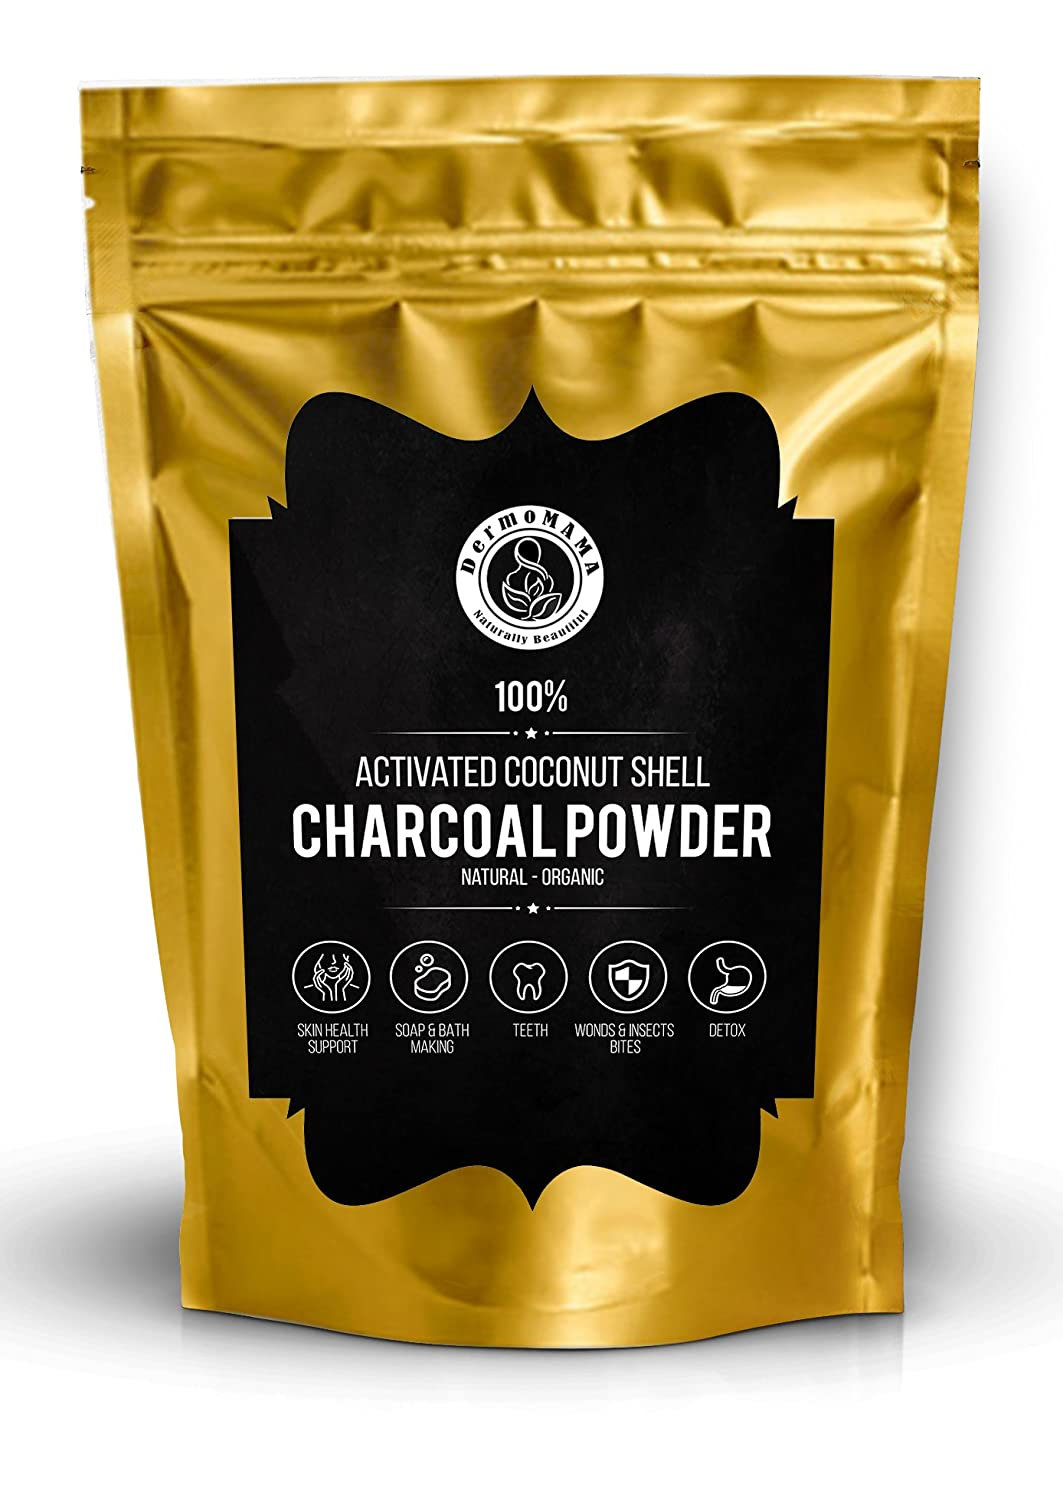 Organic Activated Coconut Shell Charcoal Powder 1 lb 16 oz Food & Cosmetics Grade, Bulk, for Toothpaste, Soap Making, Natural Teeth Whitening Solution, DIY Peel Off Mask NO Trees Harmed in Marking